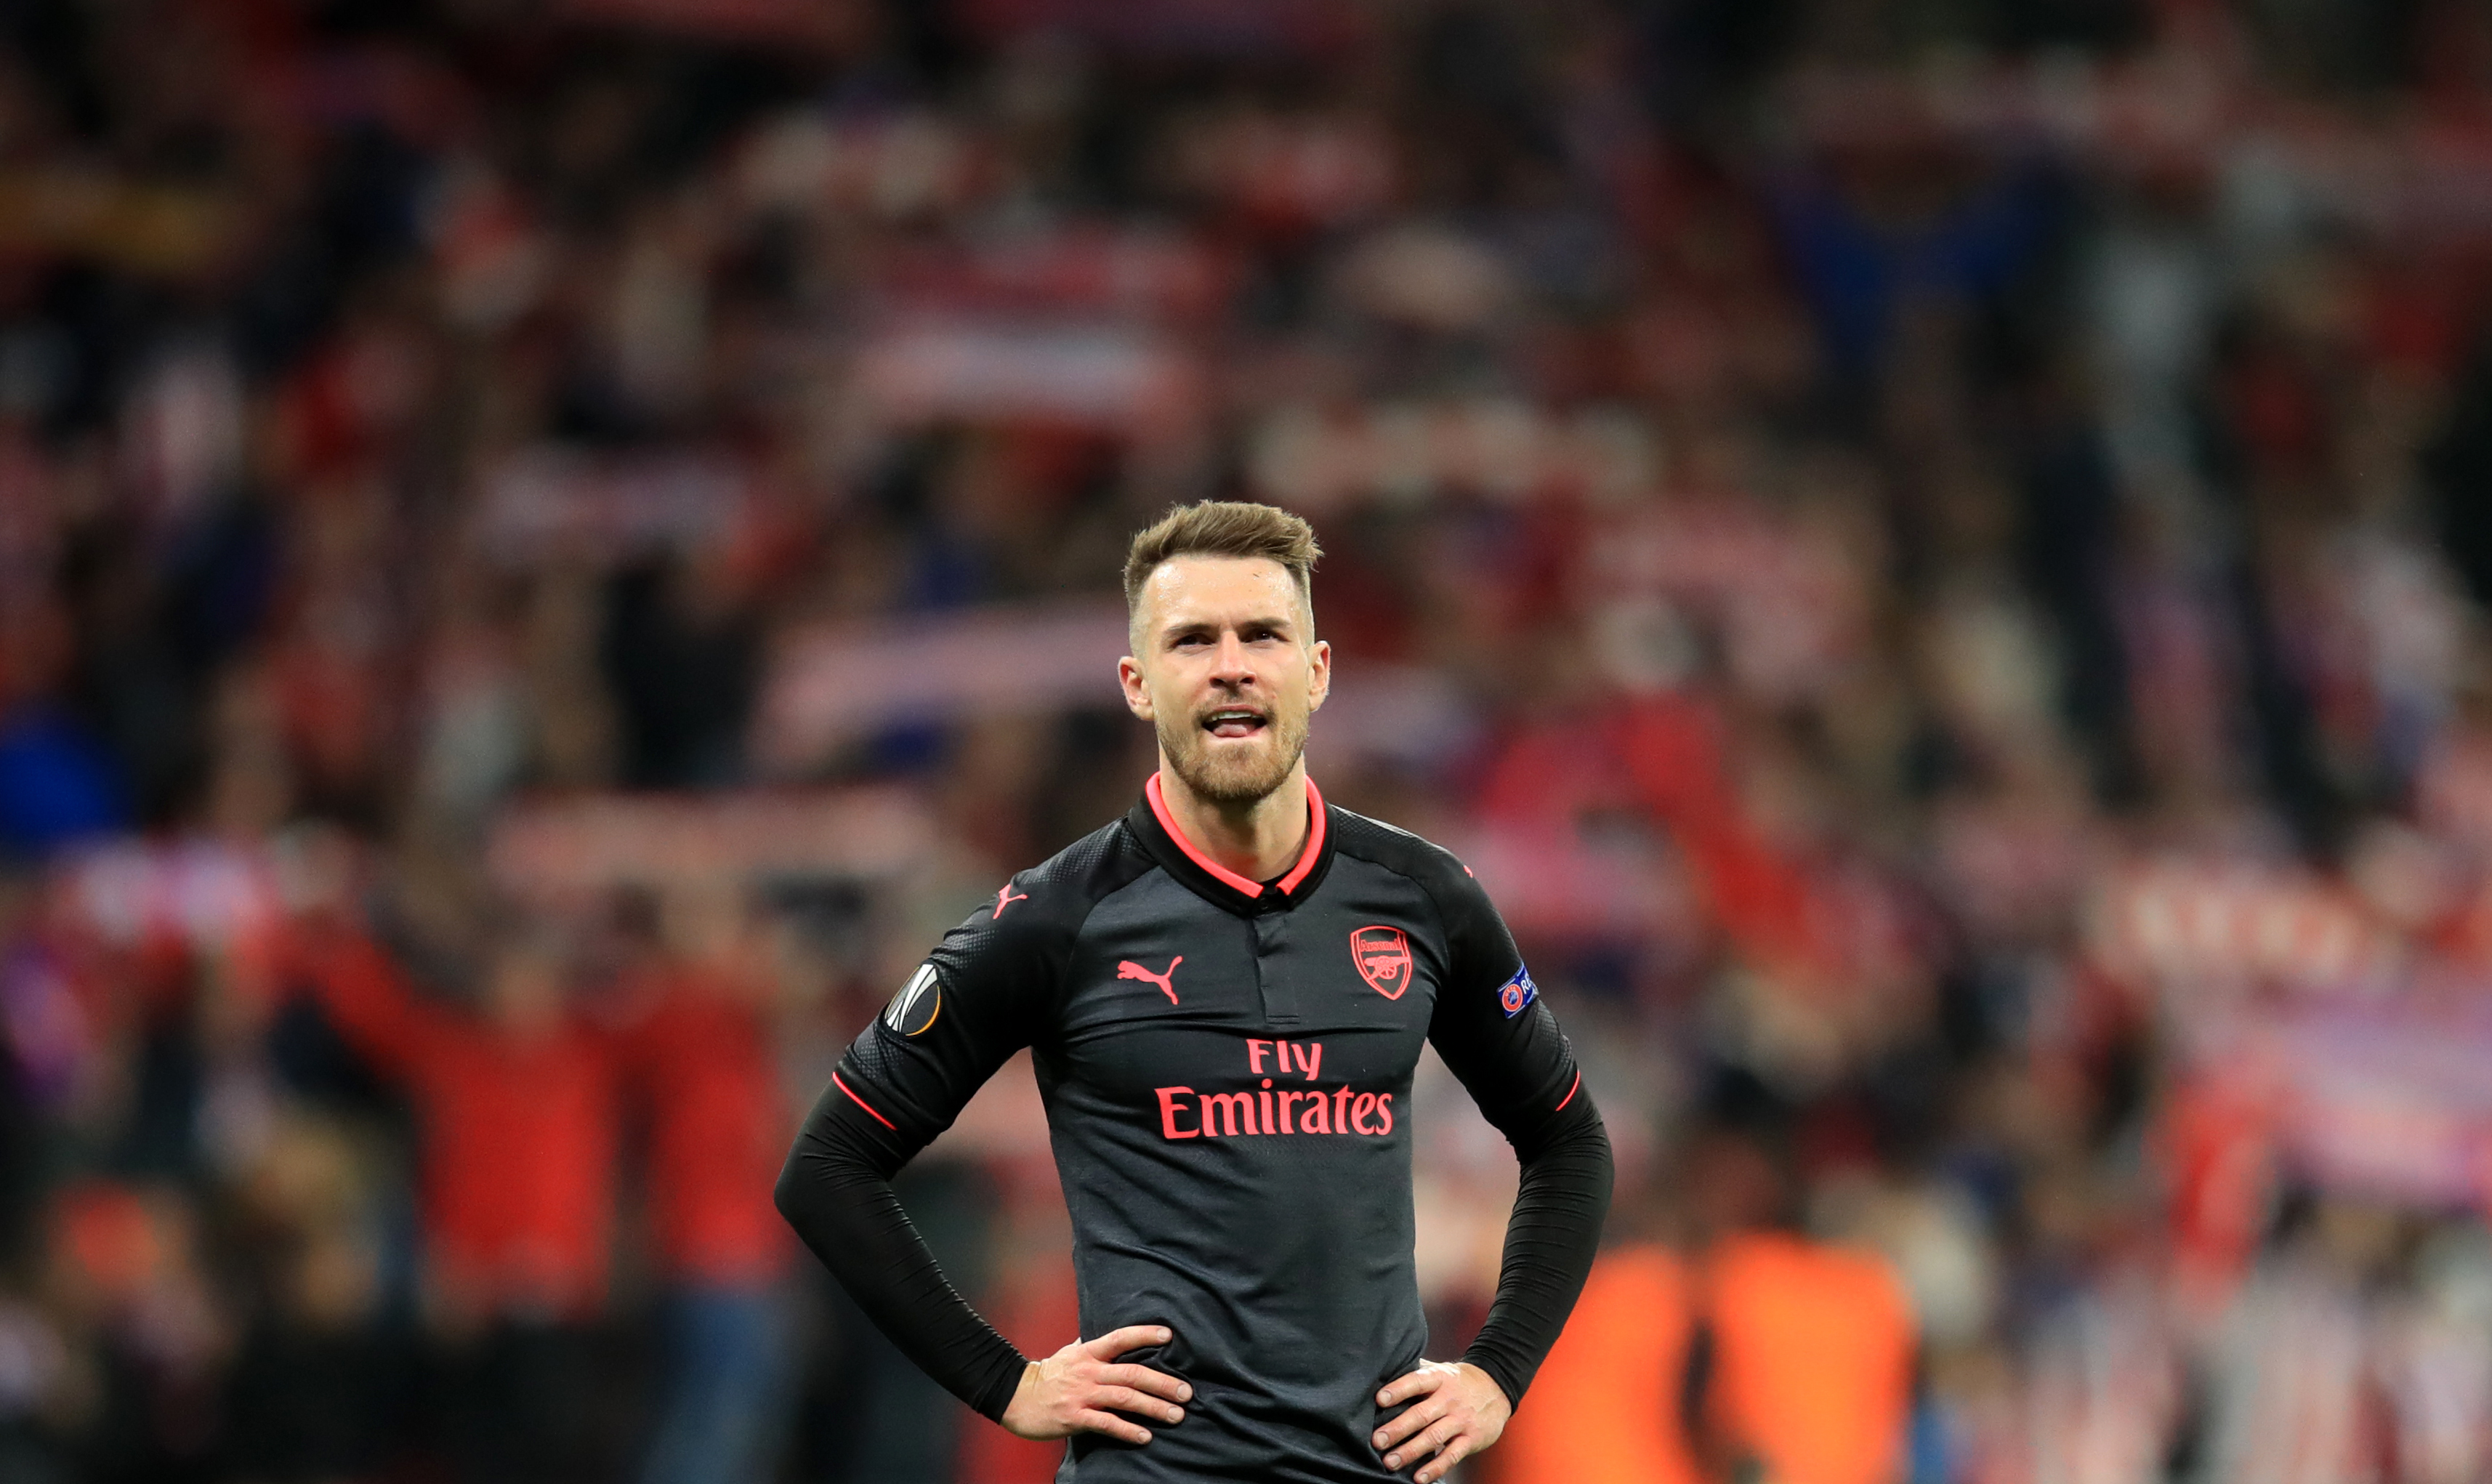 Aaron Ramsey's time at Arsenal coming to an end?